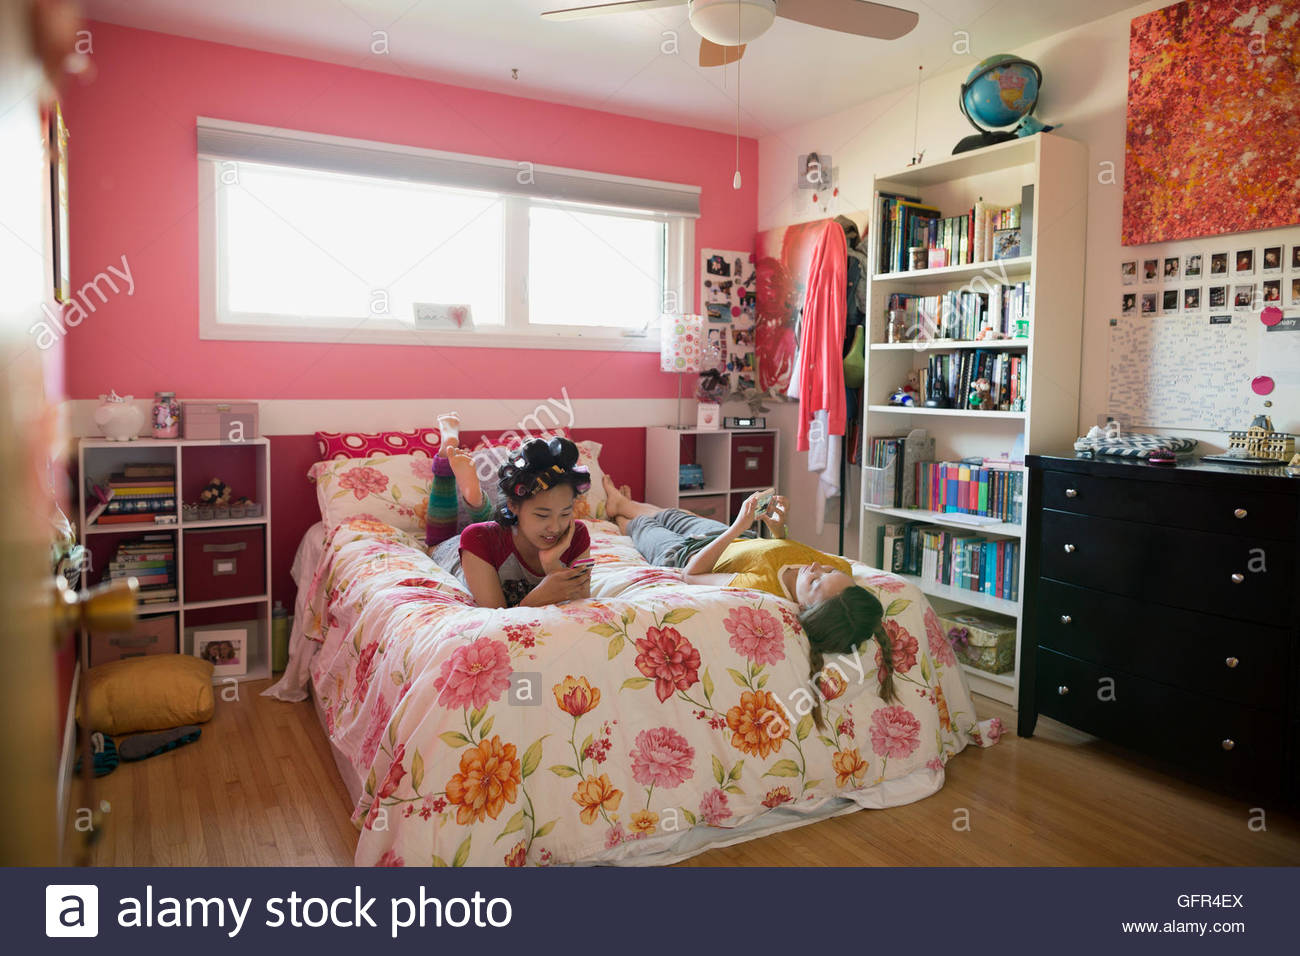 Girls looking at cell phones on bed - Stock Image